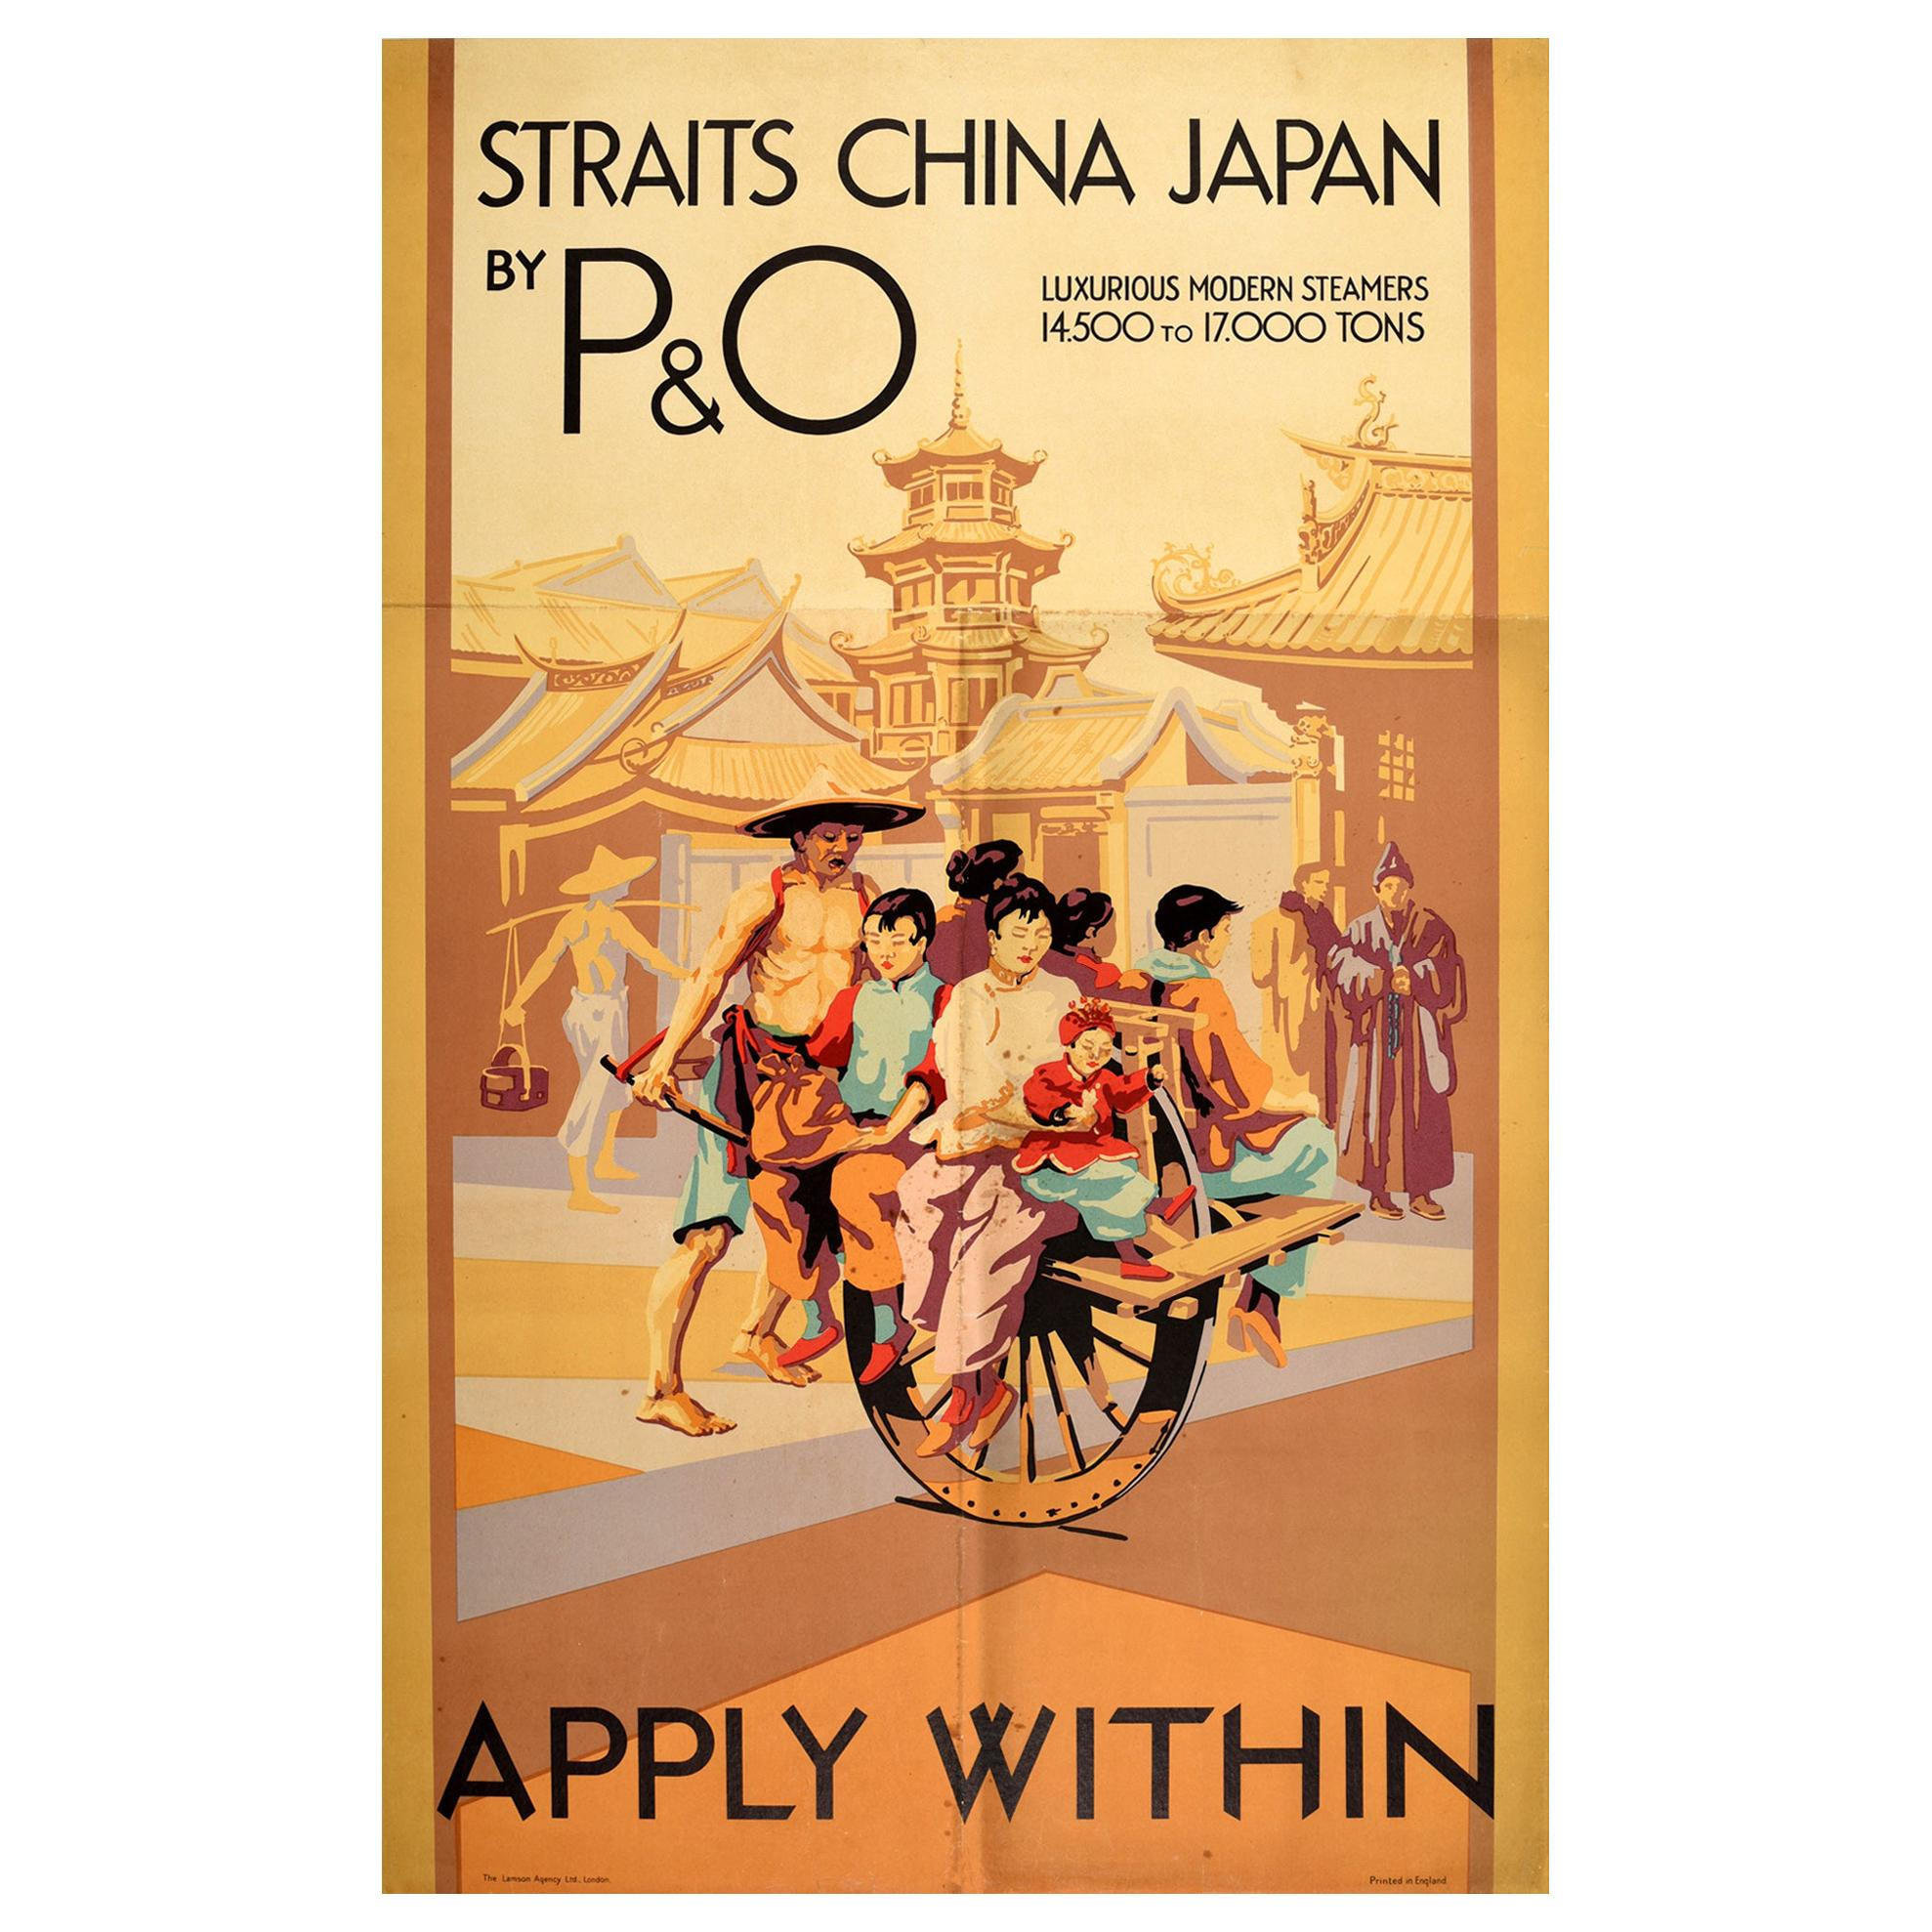 Original Vintage Poster Straits China Japan By P&O Cruise Ship Travel To Asia